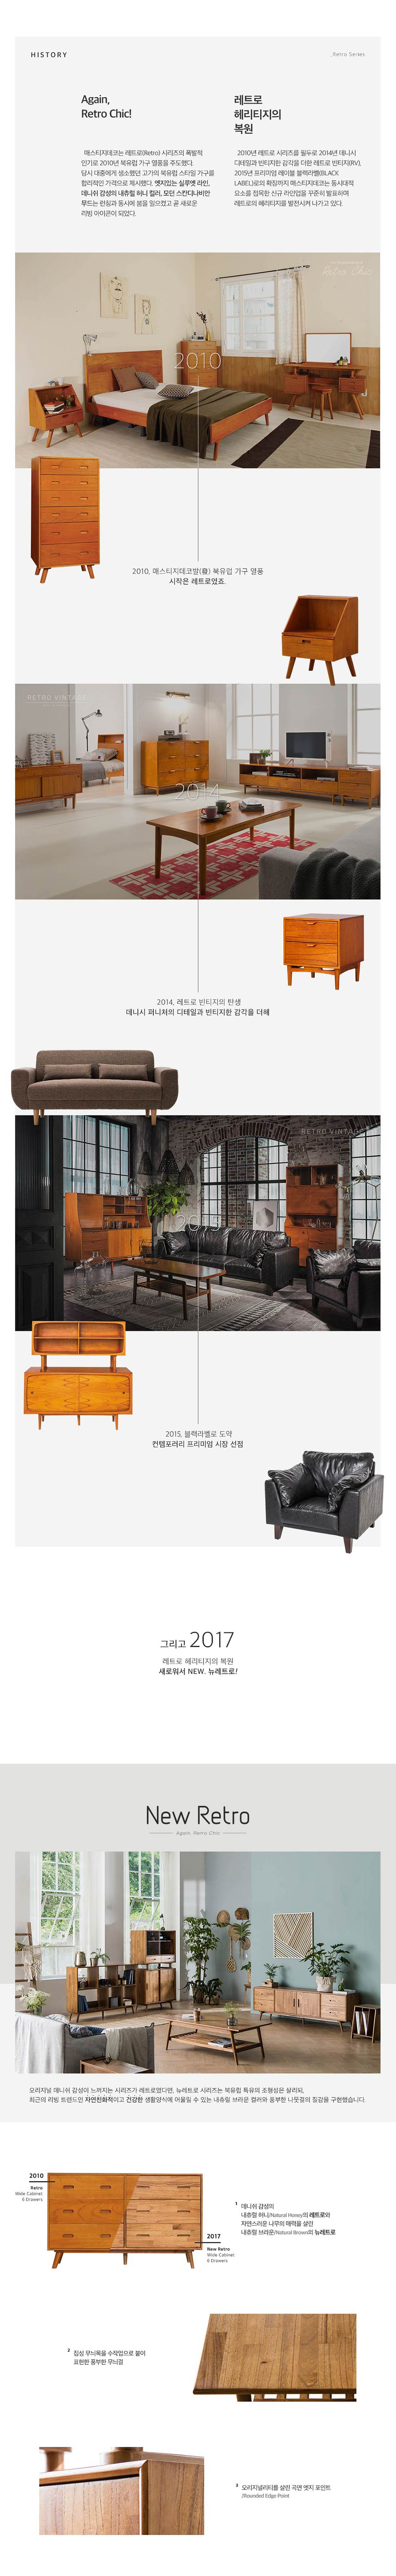 New_Retro_Side_Rack_Furniture_Singapore_History_1_by_born_in_colour